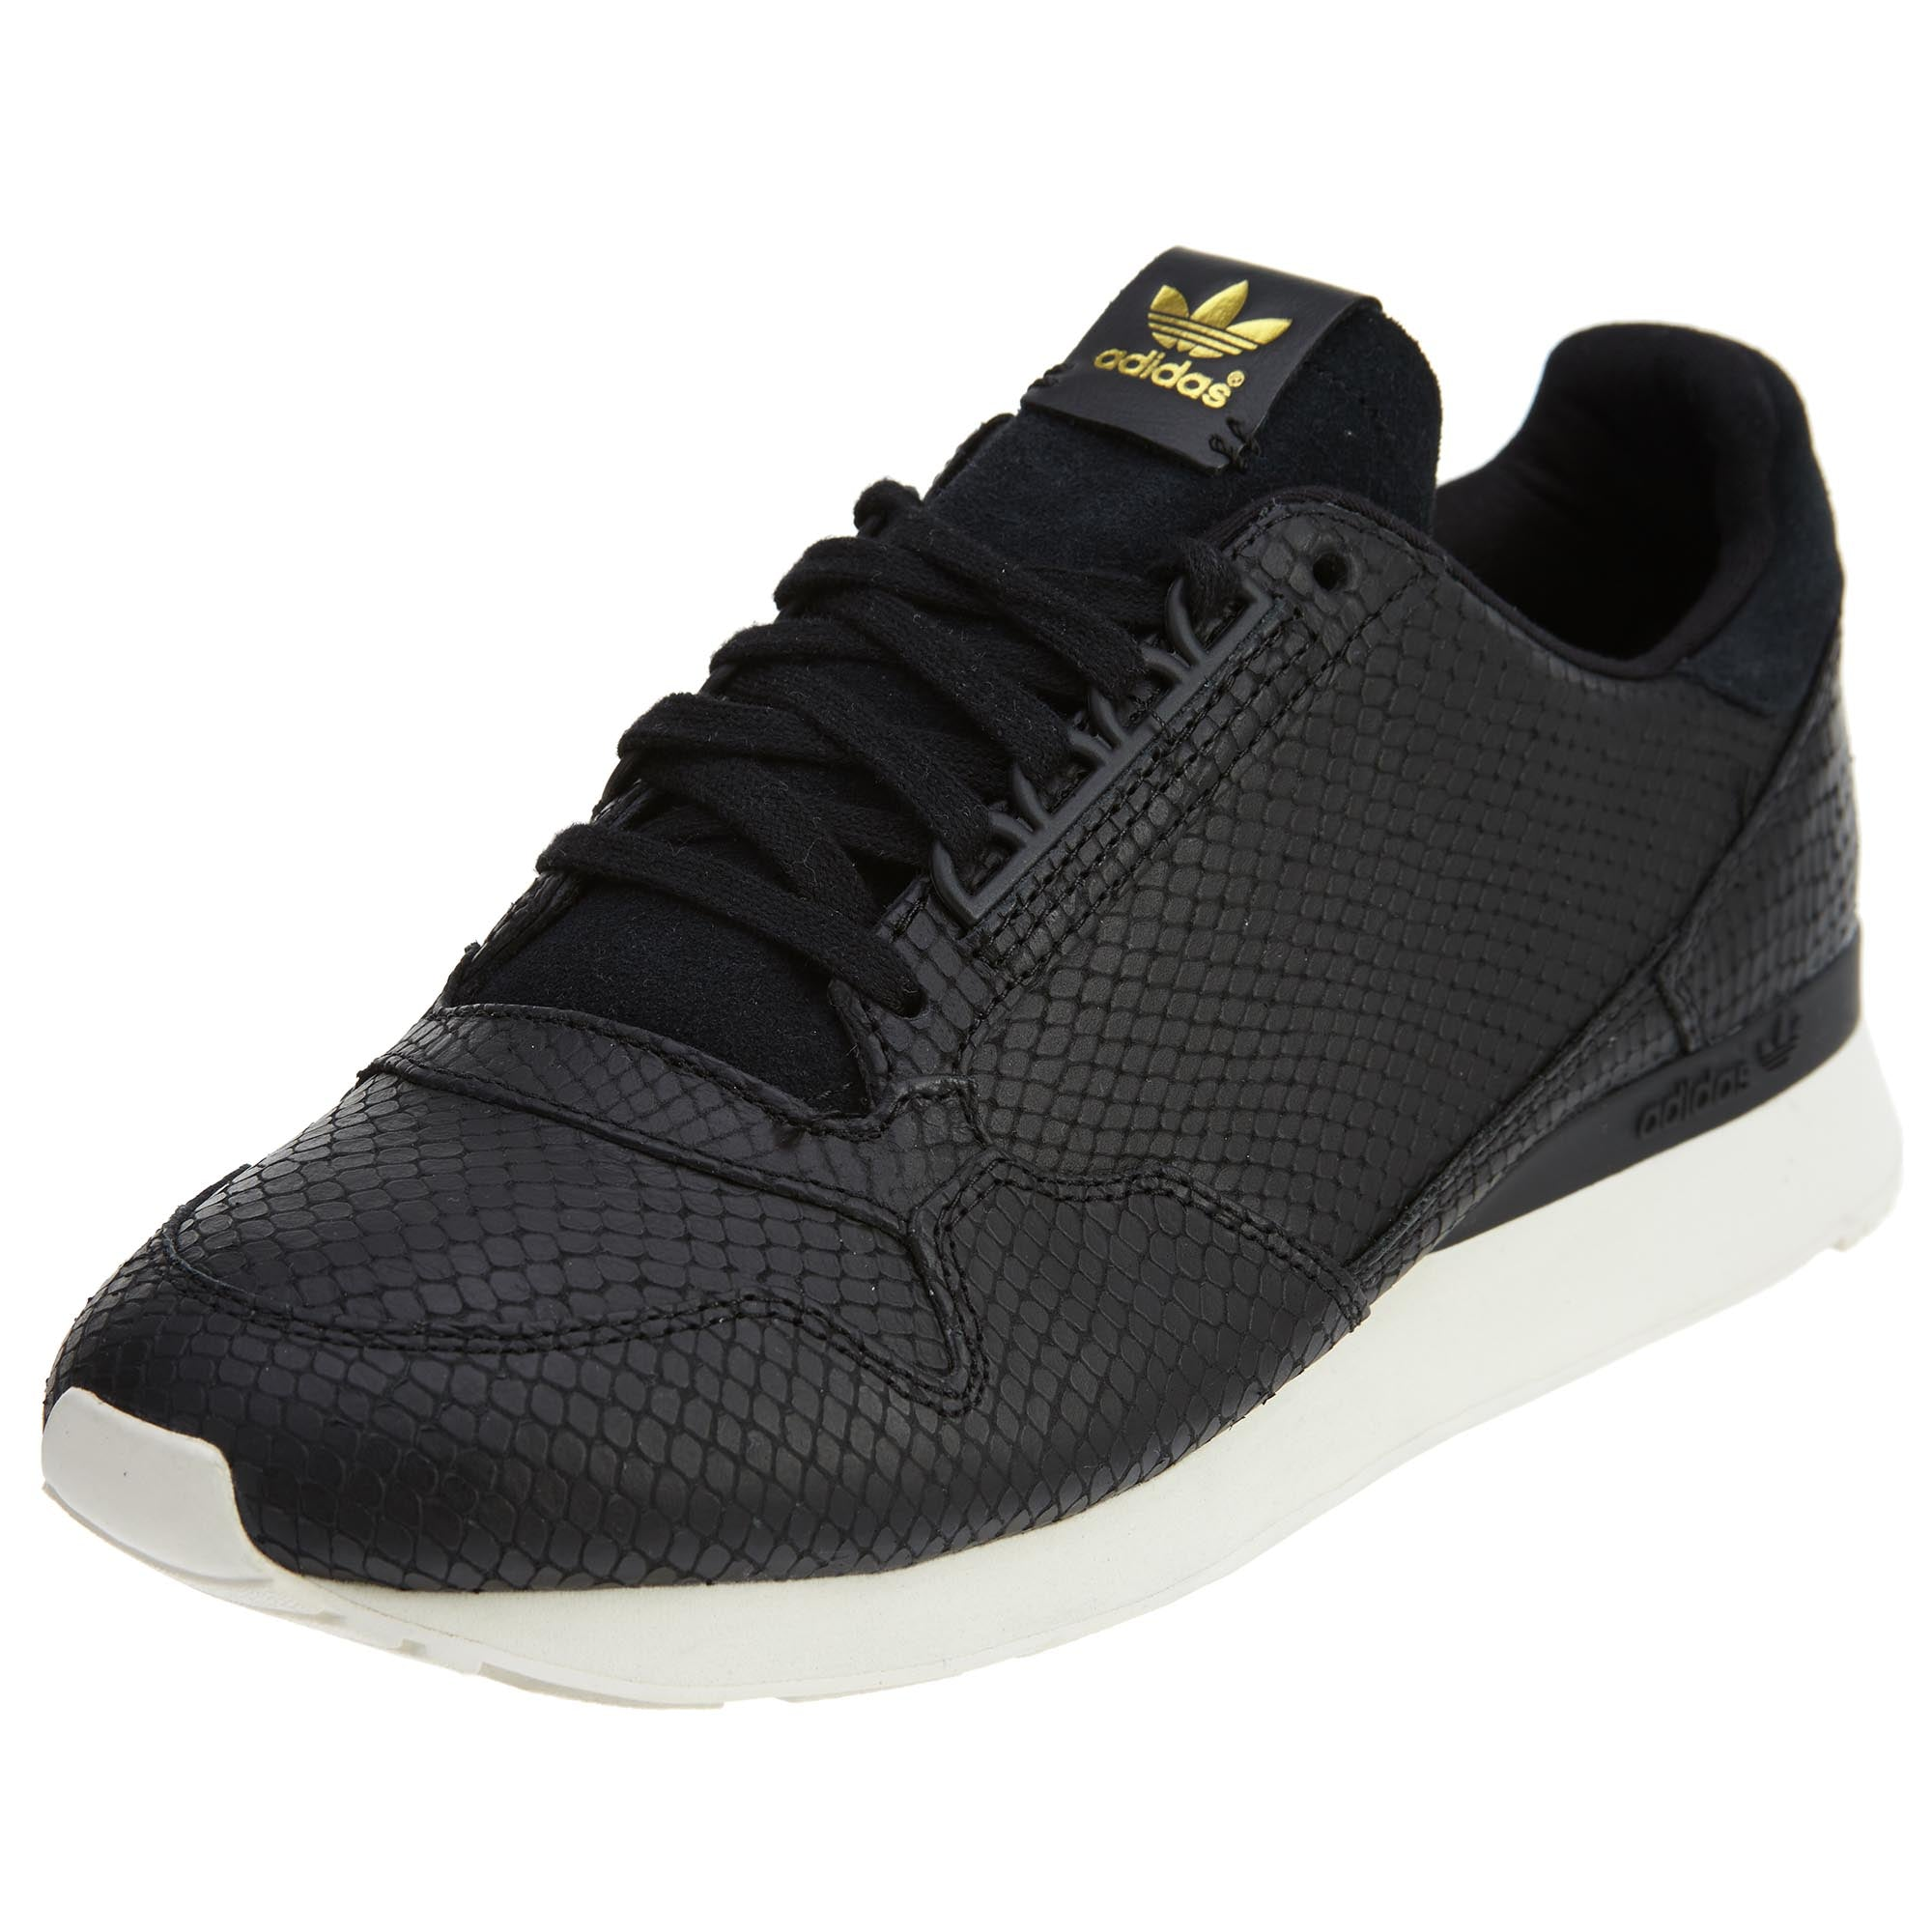 8cd9b3304 Adidas Zx 500 Og Snake W Womens Style   D65901. ADIDAS   Athletic Shoes    Sneakers